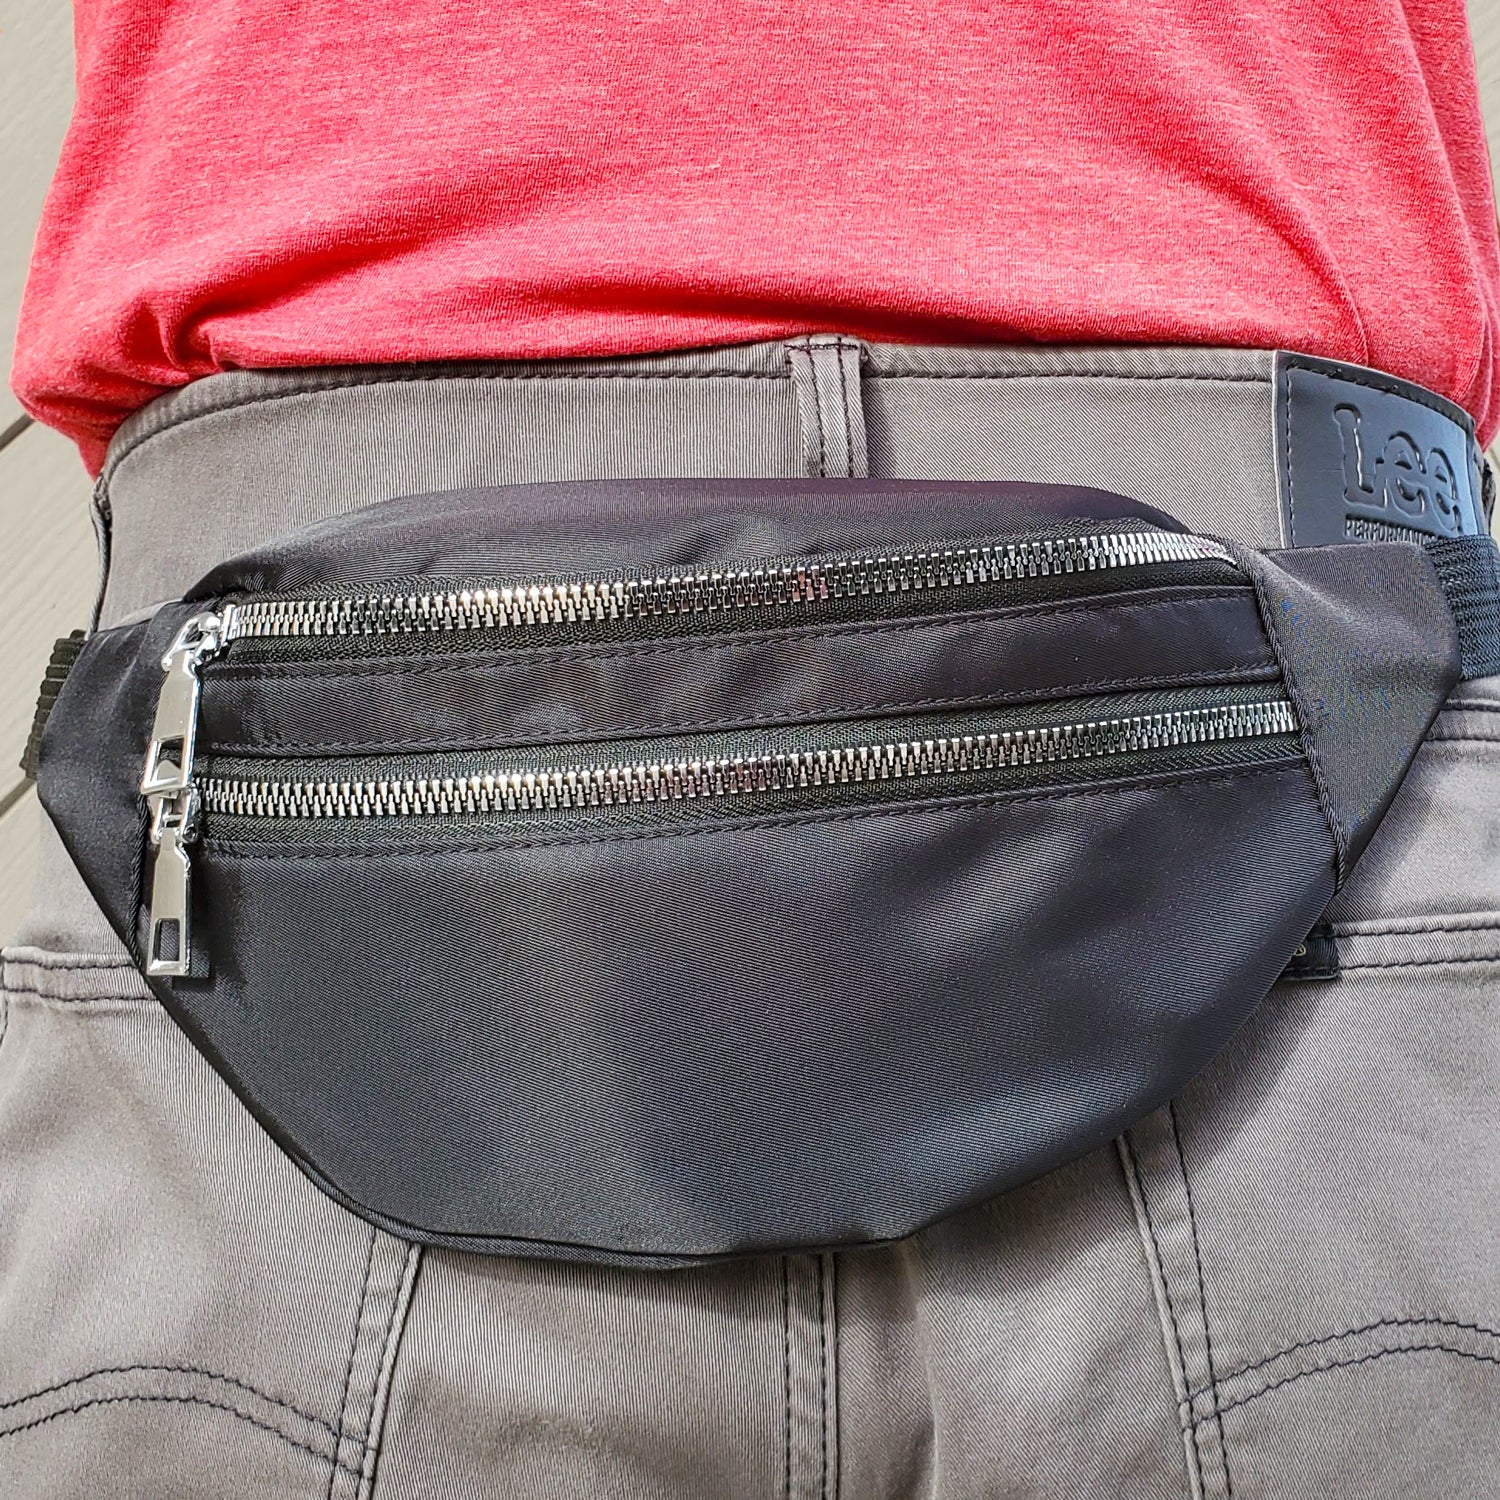 Jet Black Fanny Pack With Chrome Zippers